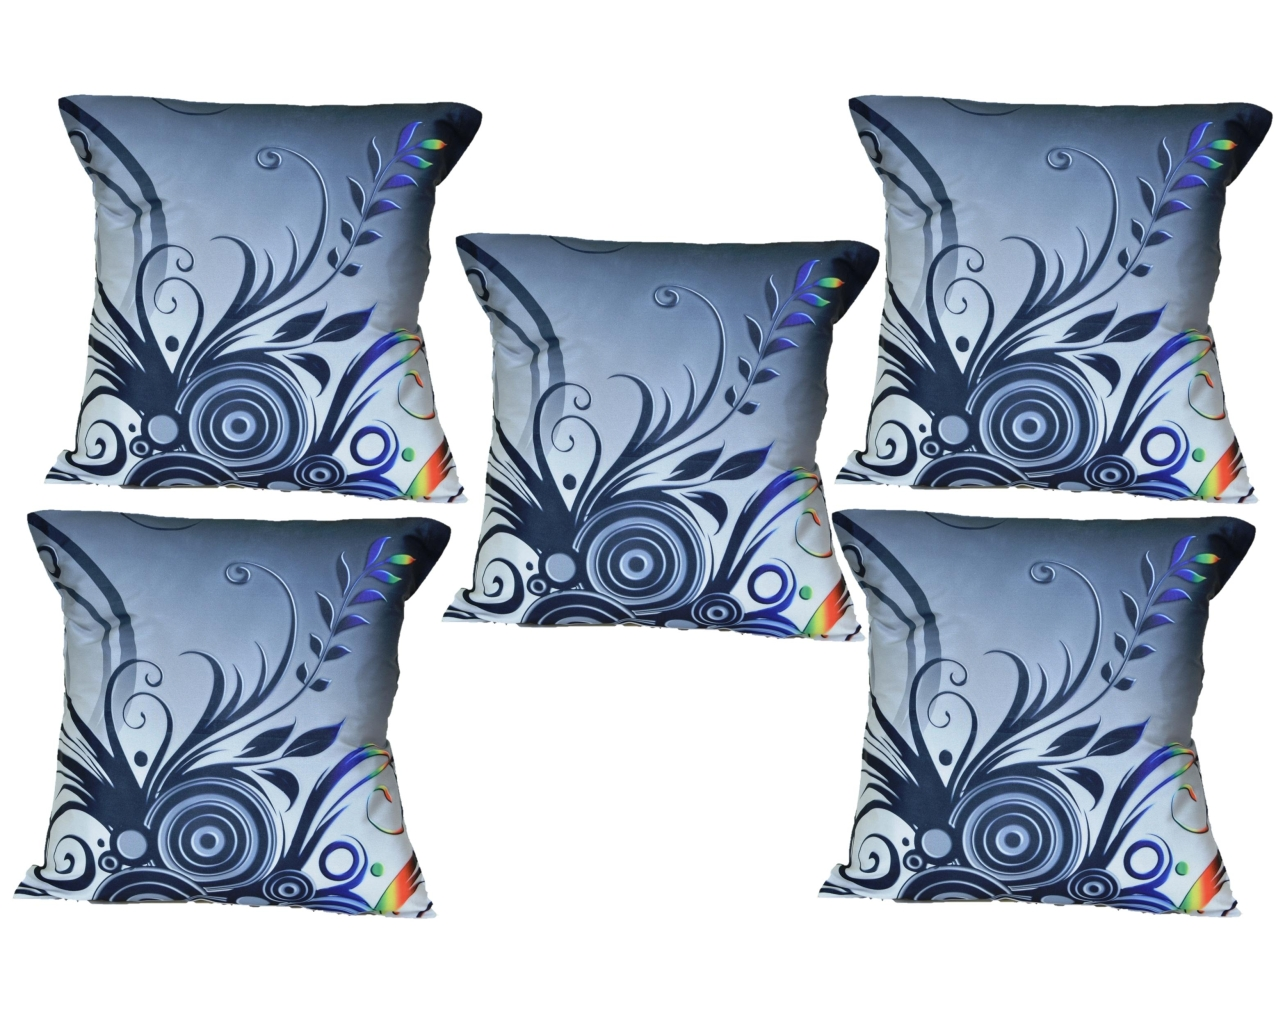 Cushion Covers -Painted Abstract for Fabric Painting Designs On Cushion Covers  155sfw